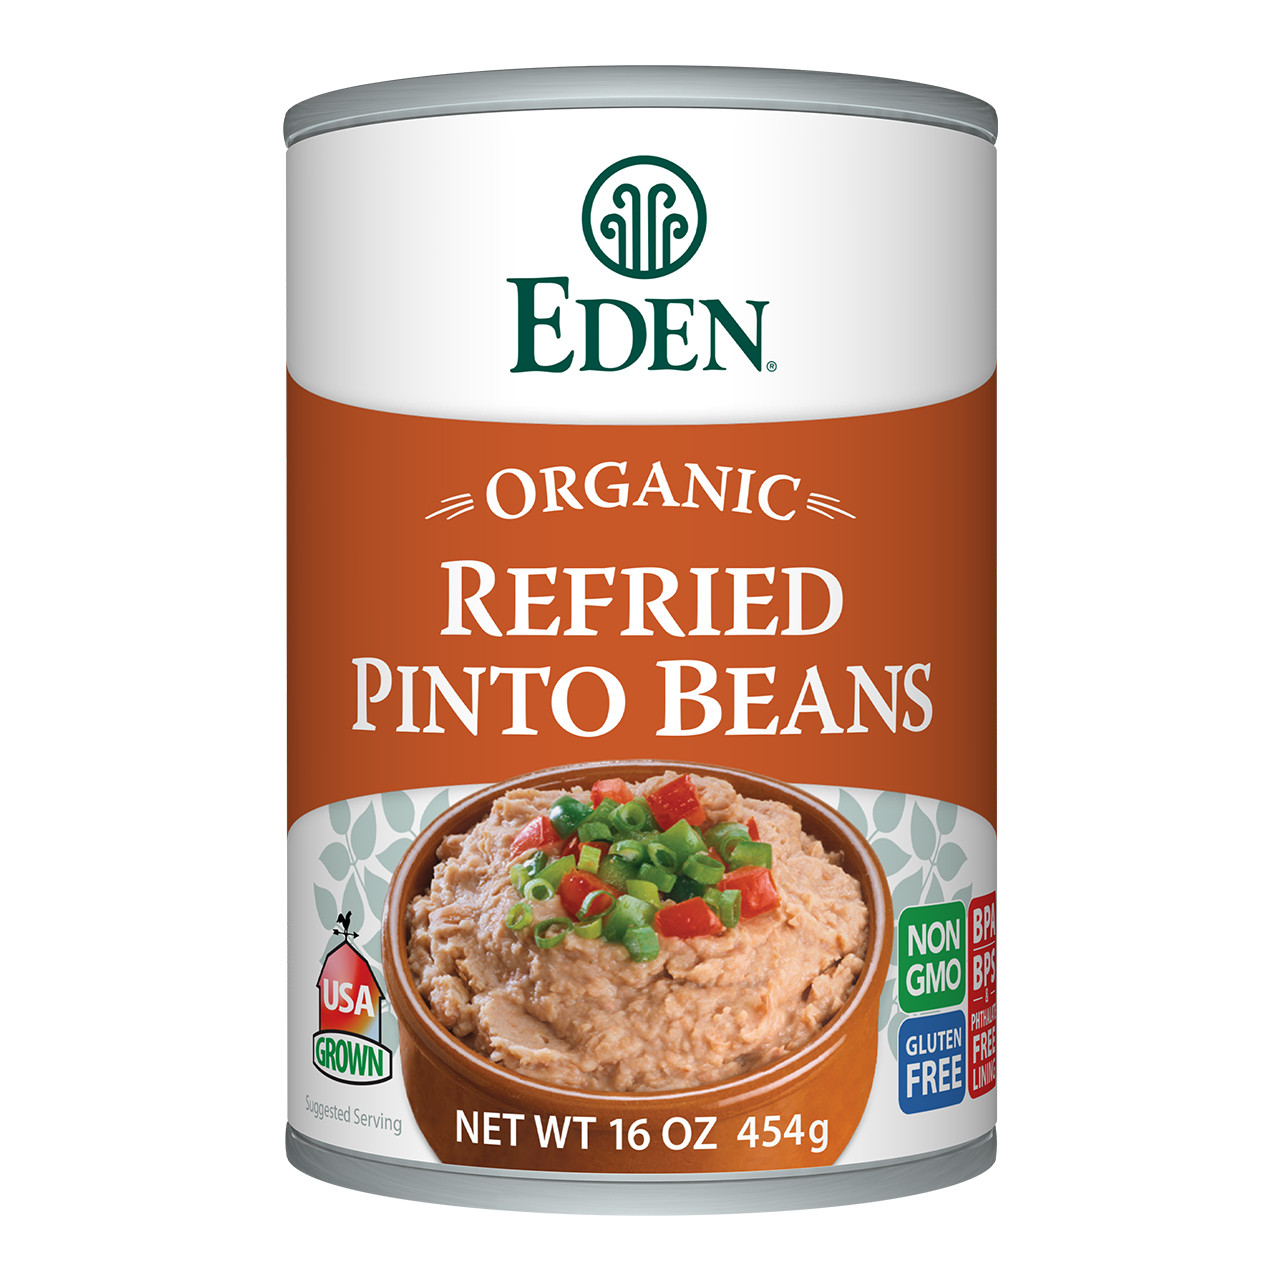 Refried Pinto Beans, organic